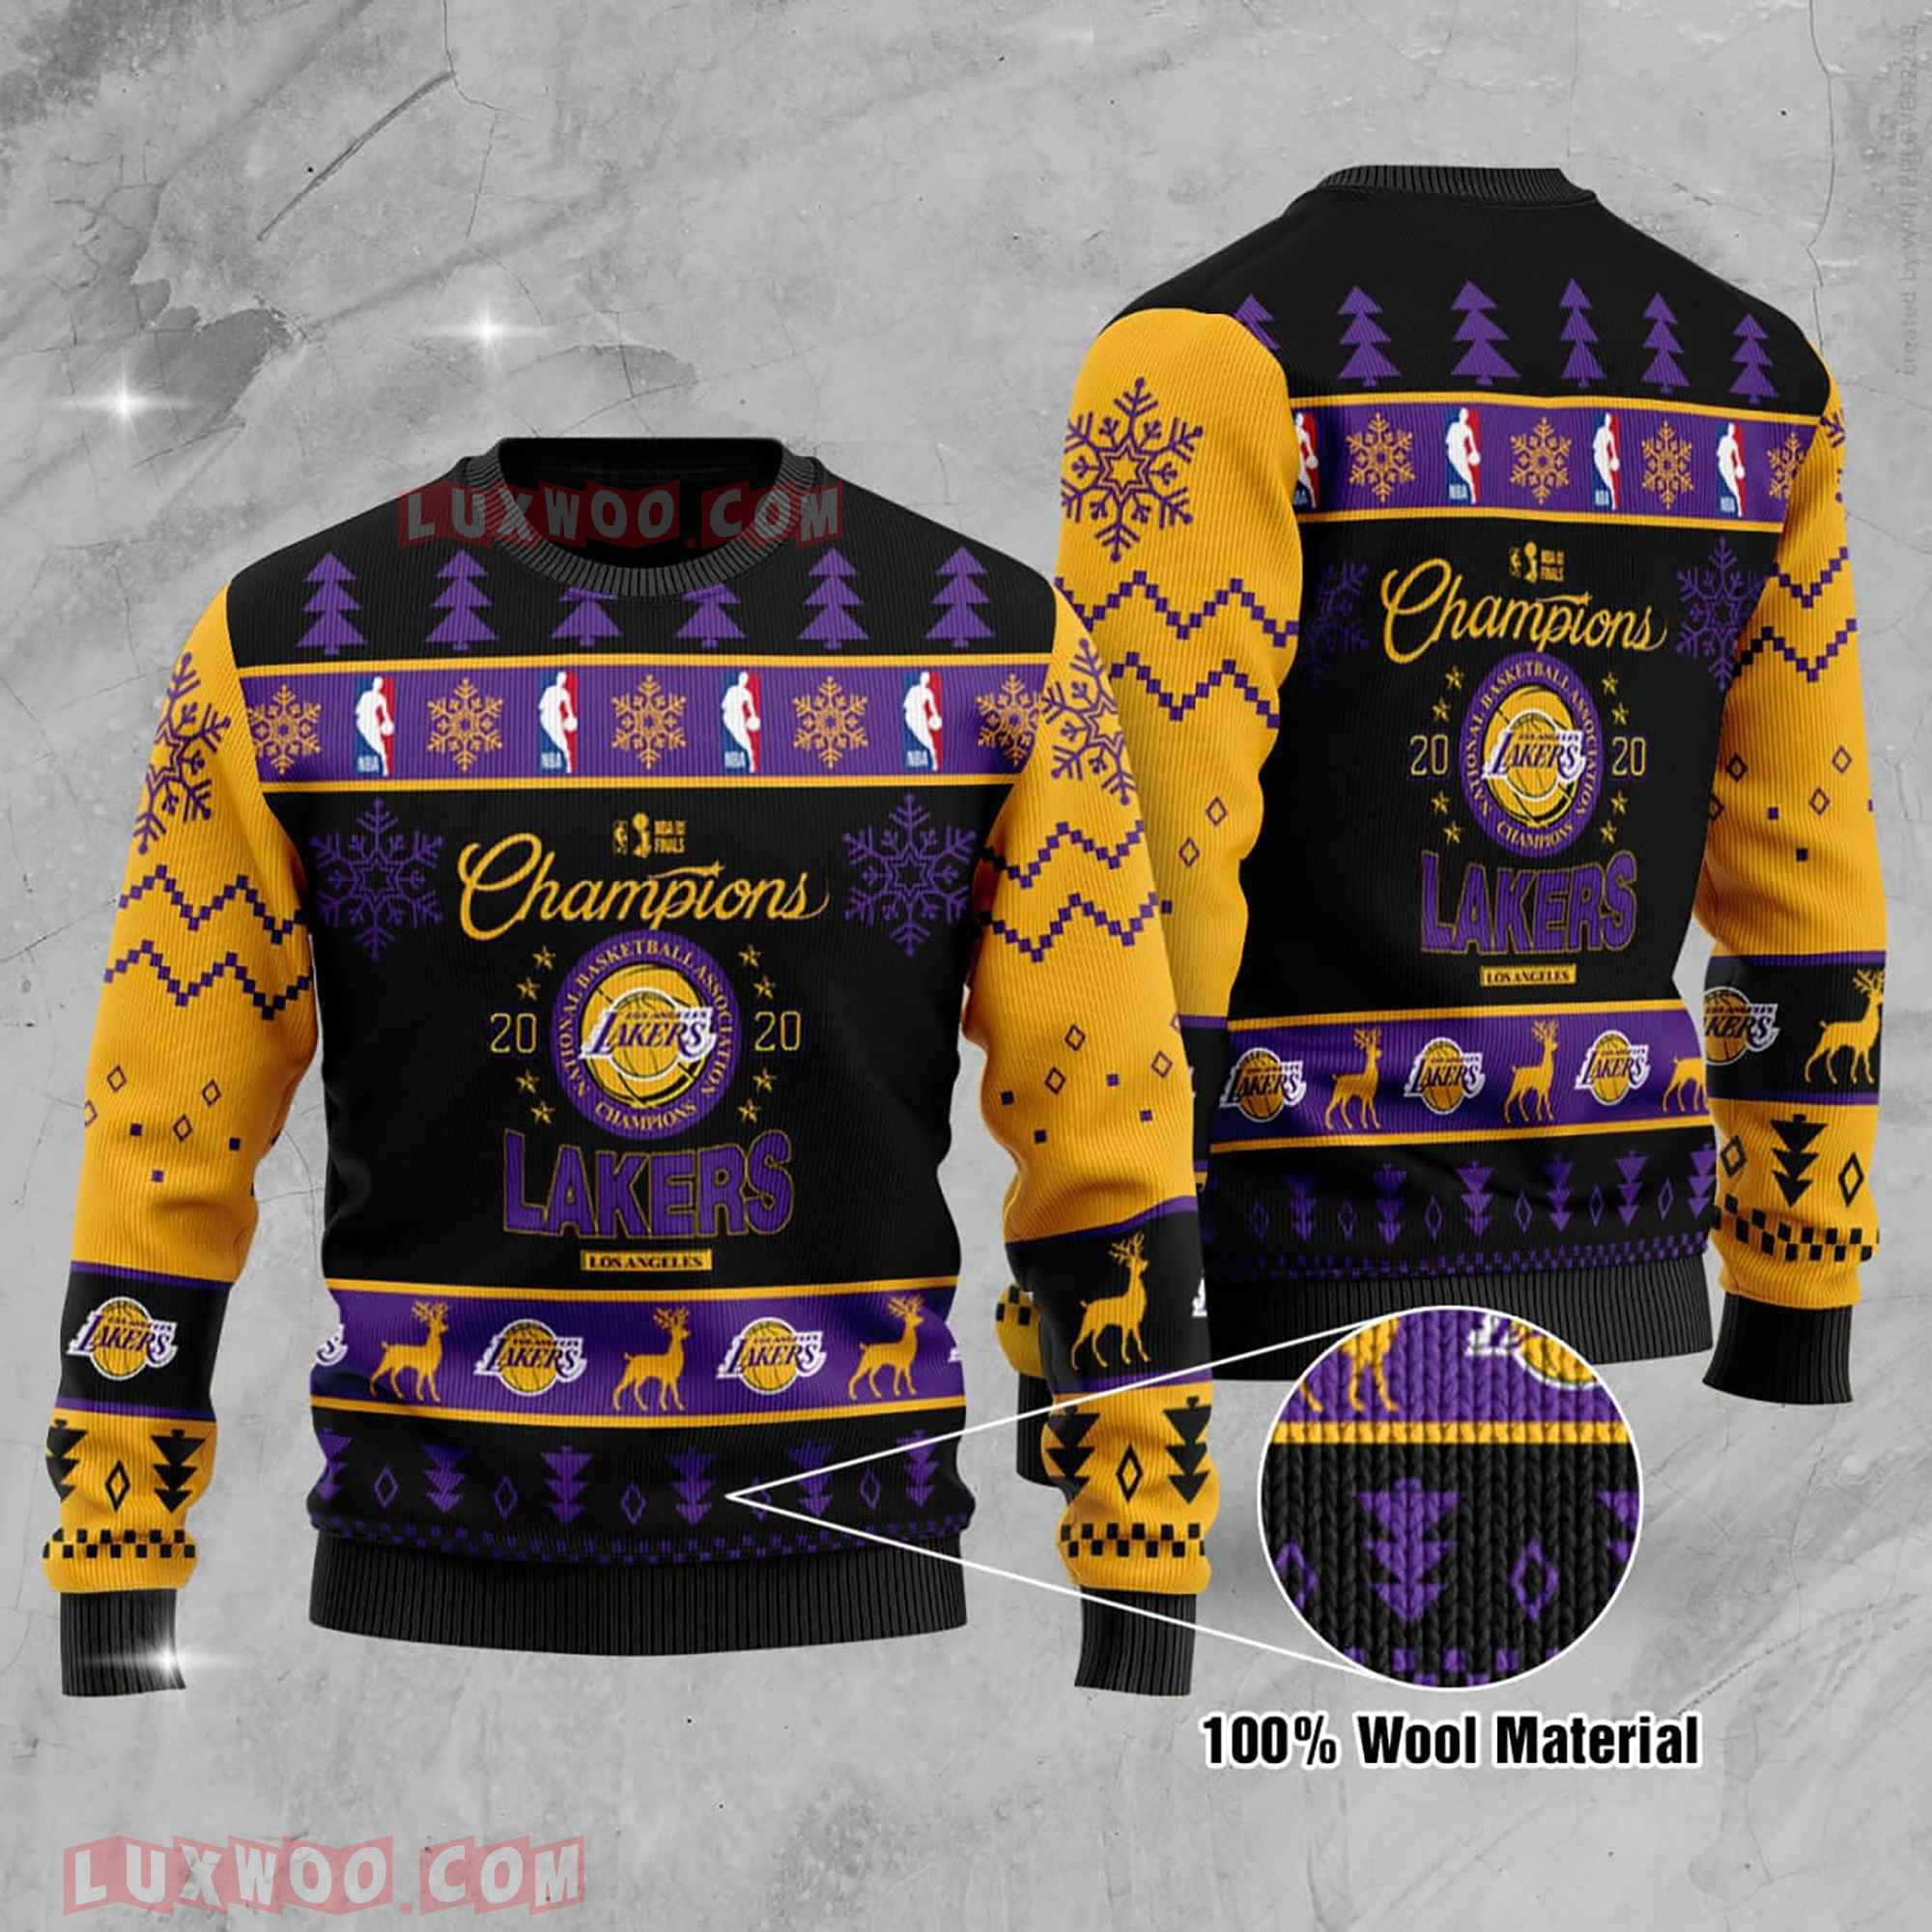 Los Angeles Lakers Nba Champions La Laker Nba Champion Ugly Christmas Sweater Wool Material